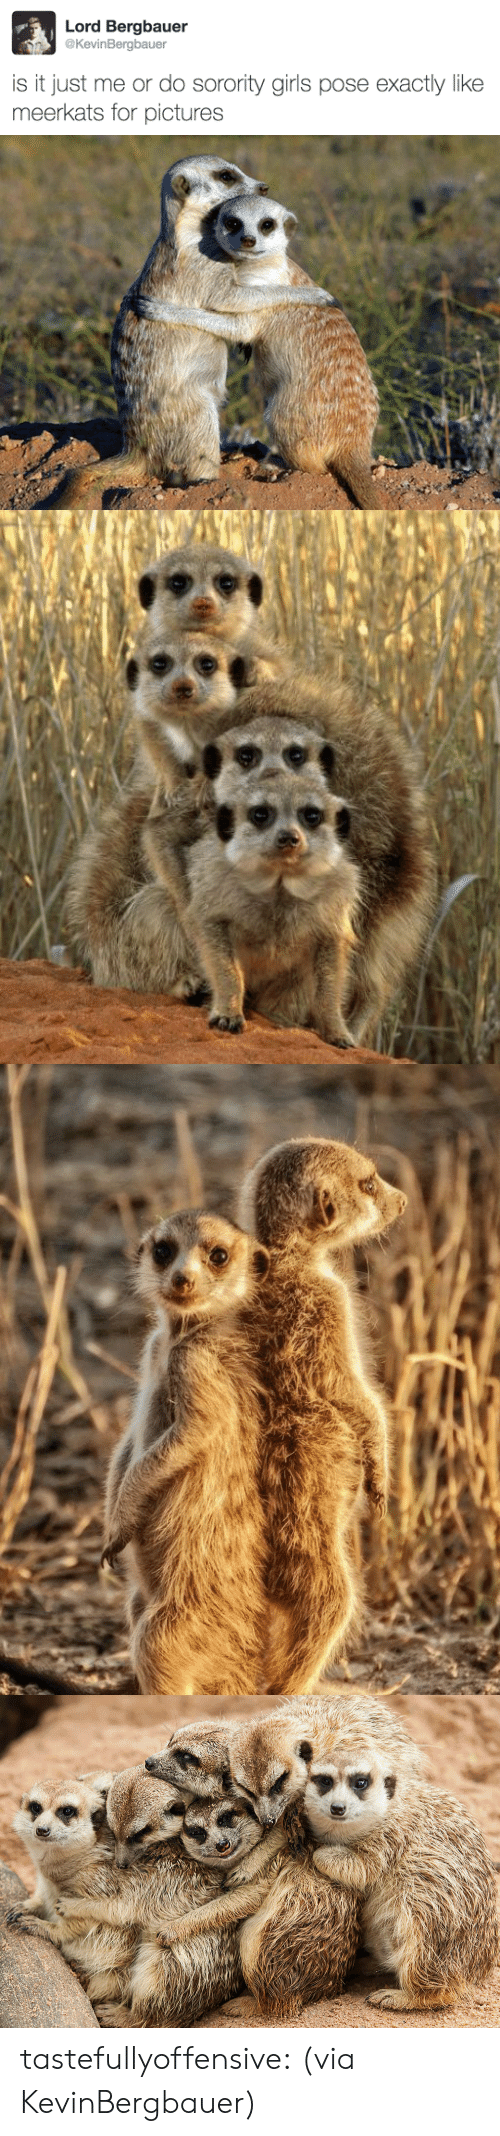 Is It Just Me Or: Lord Bergbauer  @KevinBergbauer  is it just me or do sorority girls pose exactly like  meerkats for pictures tastefullyoffensive:  (via KevinBergbauer)